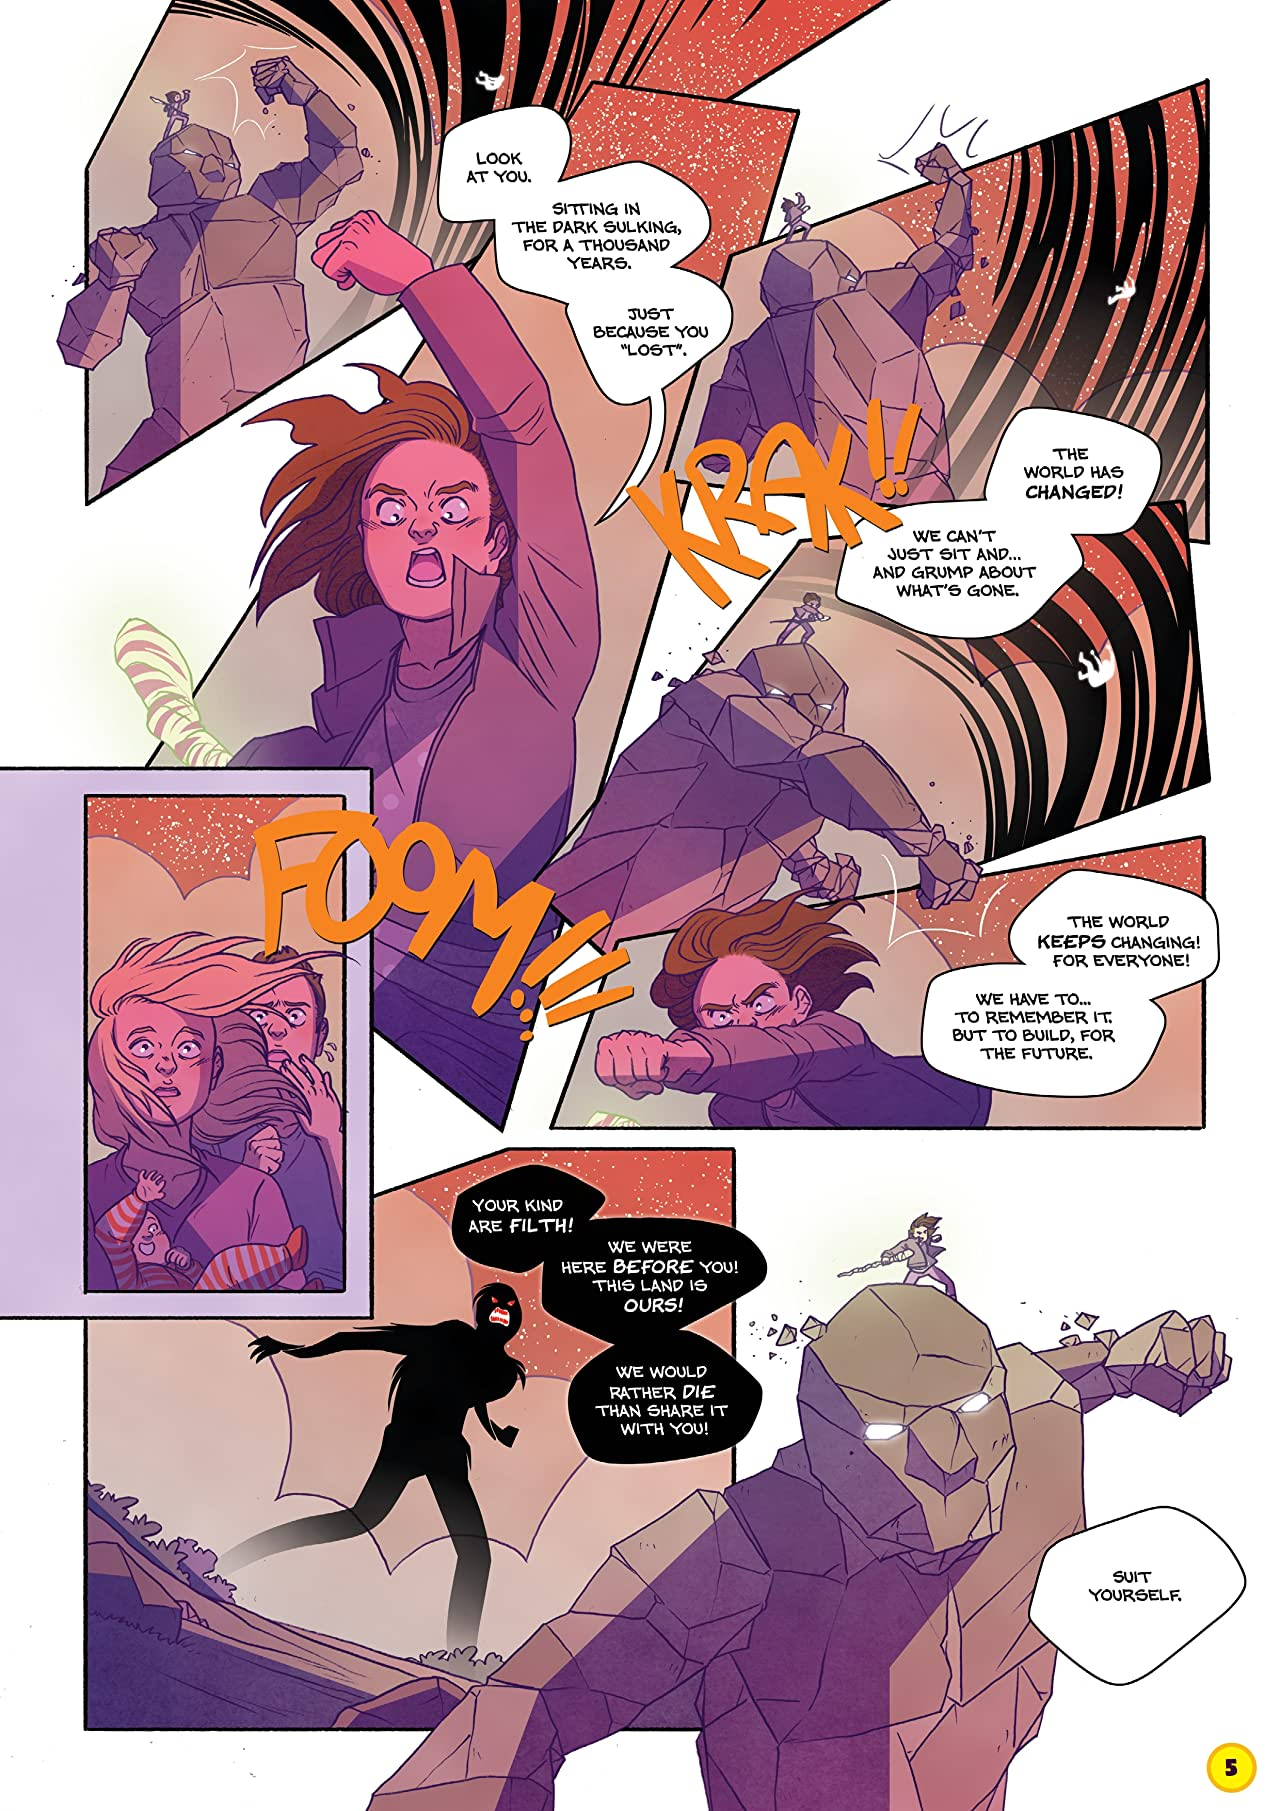 The Phoenix #242: The Weekly Story Comic